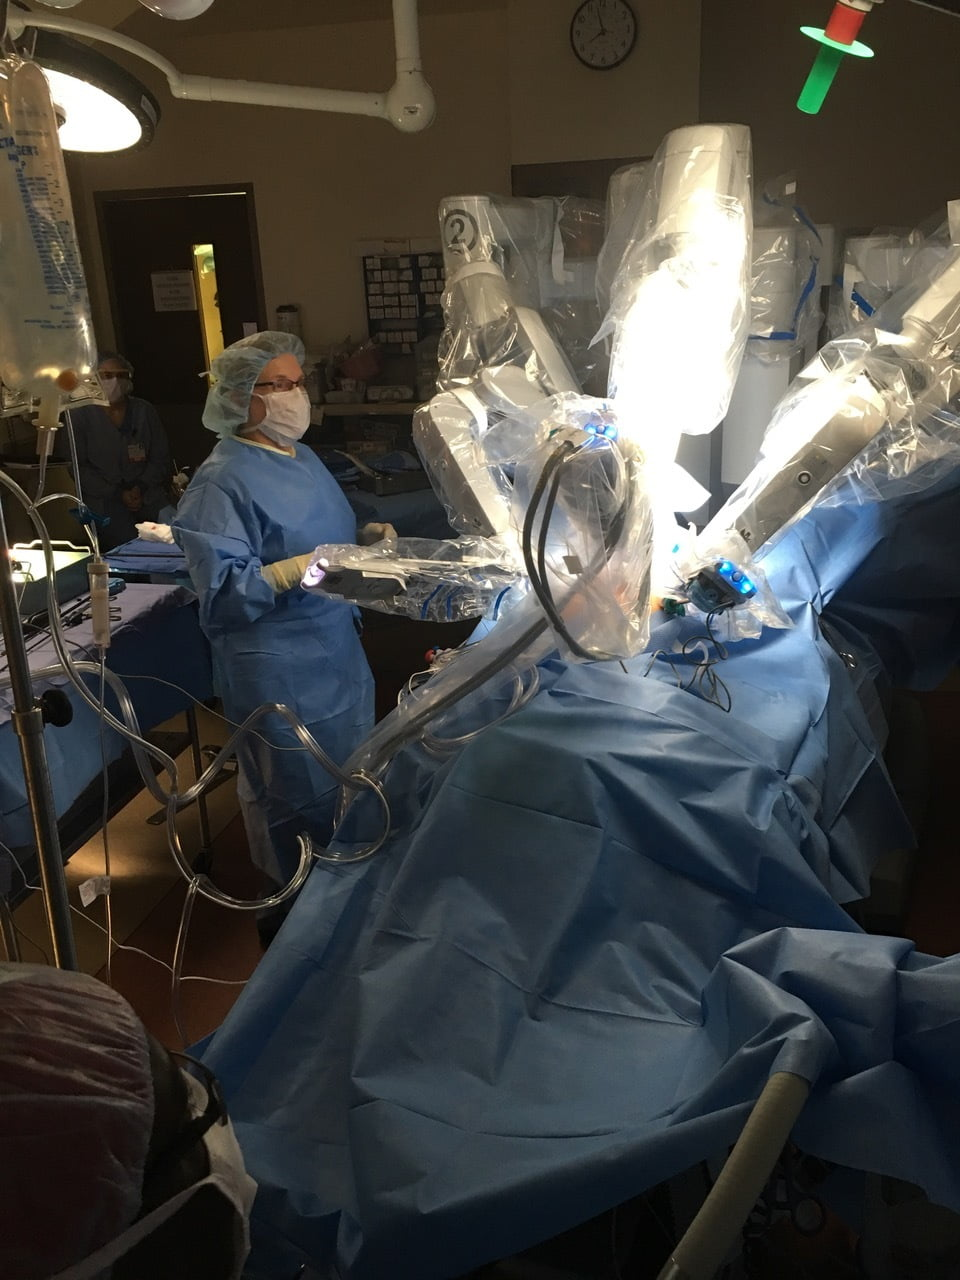 Explosive Podcast 'Robotic Disclosure' Reveals Secret to Lowest Cost, Best Outcome Robotic Surgery, With Guest Dr. Herb Coussons